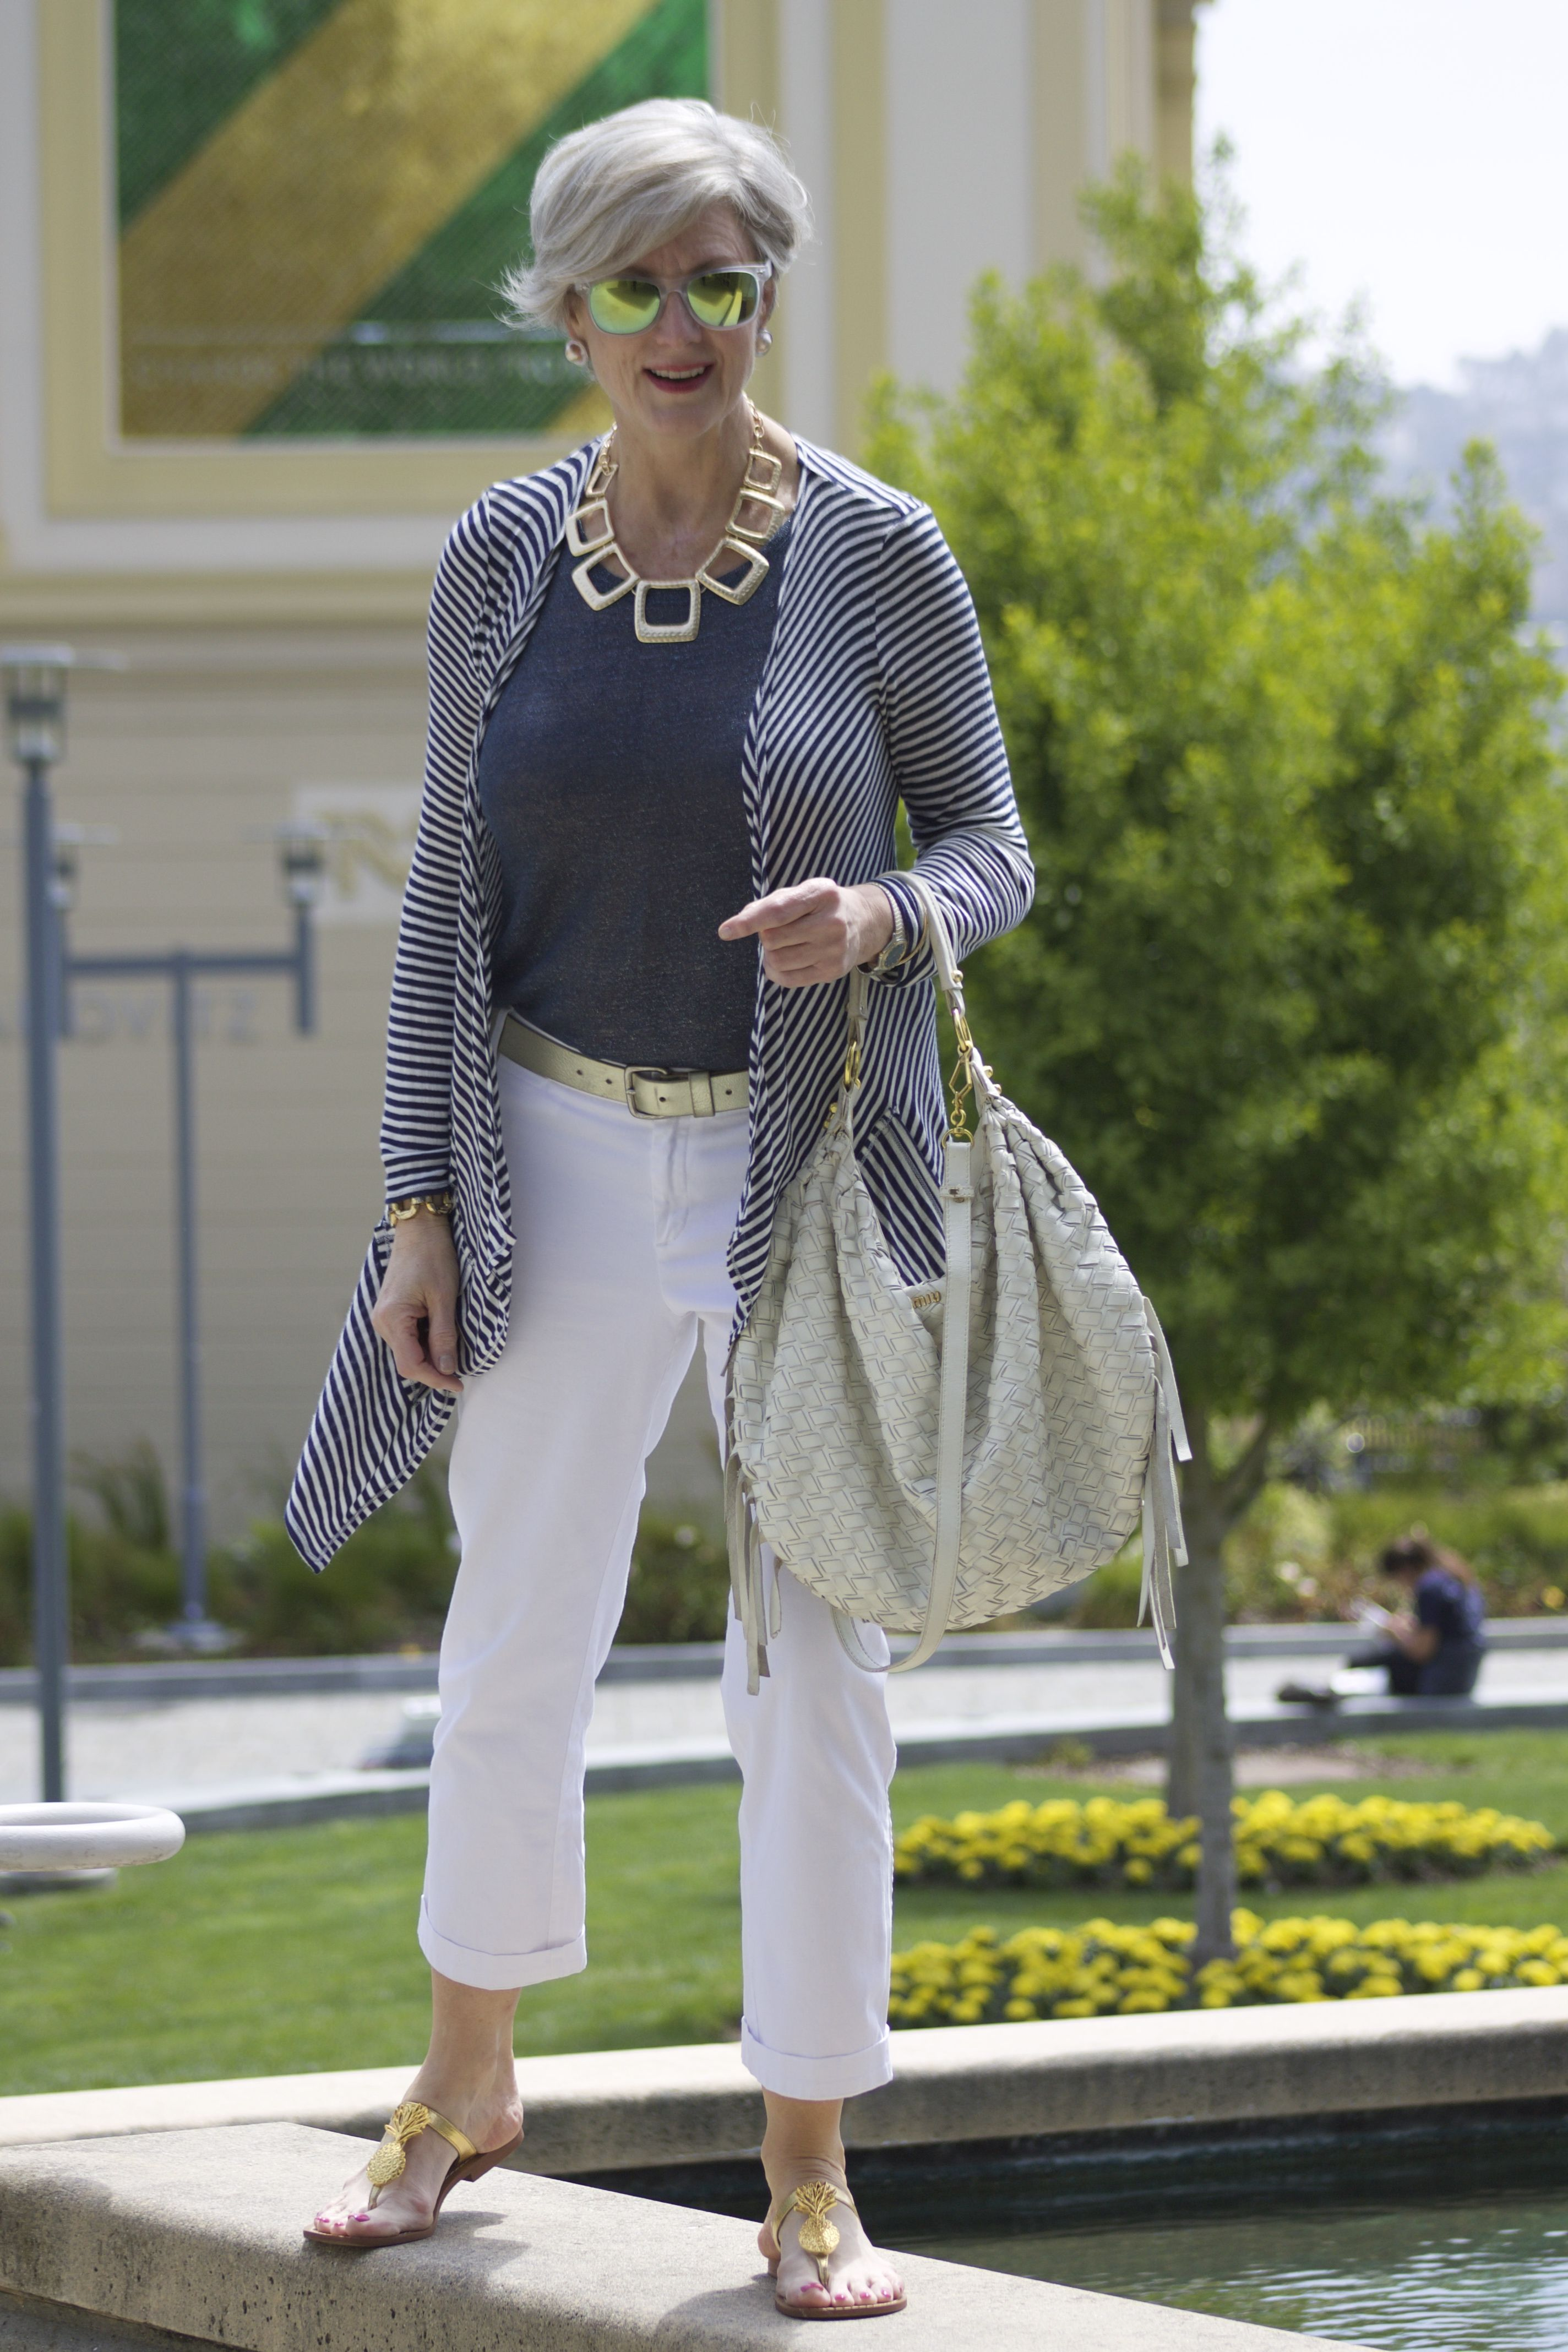 Signs Of Summer Style At A Certain Age 60 Fashion Over 50 Womens Fashion Fashion Over 50 [ 4272 x 2848 Pixel ]